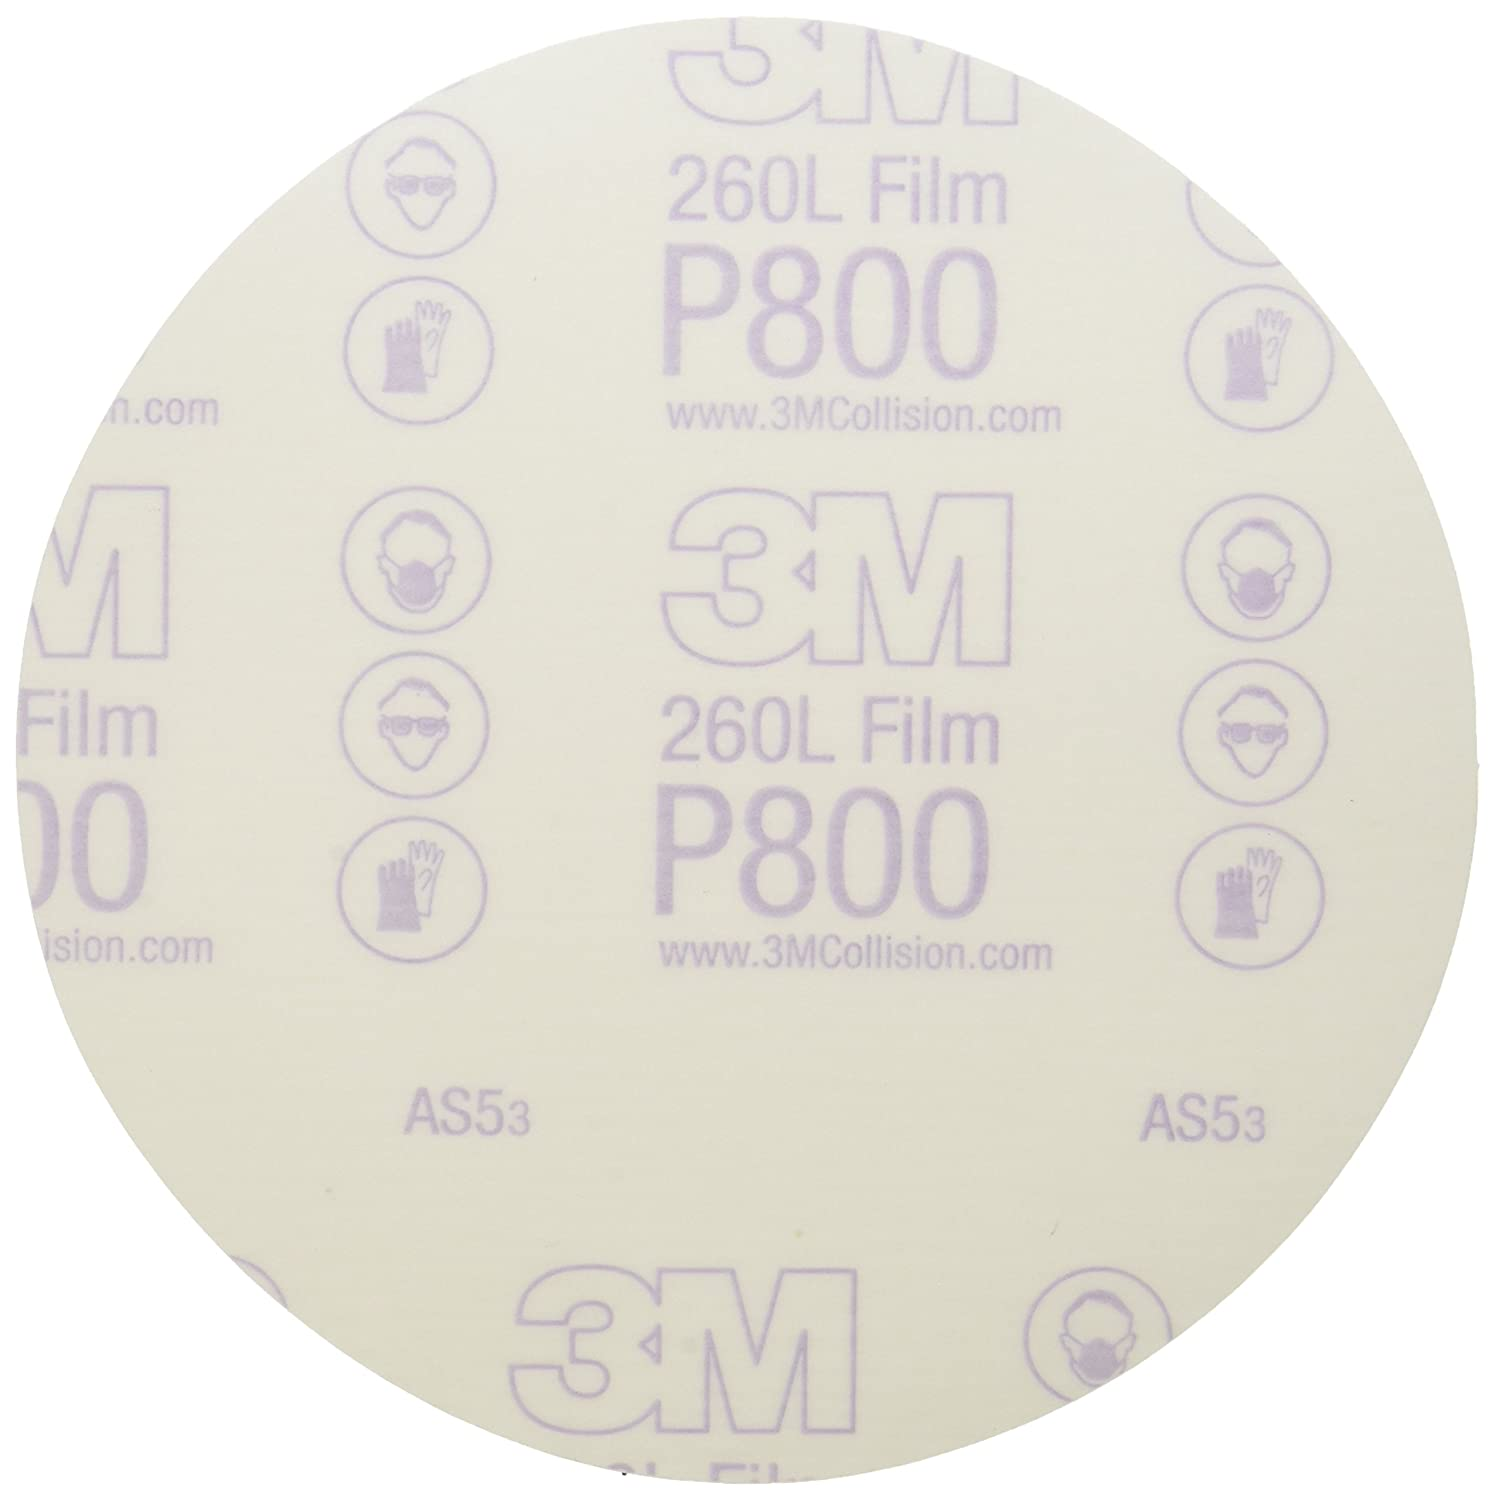 3M Stikit Finishing Film Abrasive Disc 260L, 01320, 6 in, P800, 100 discs per carton